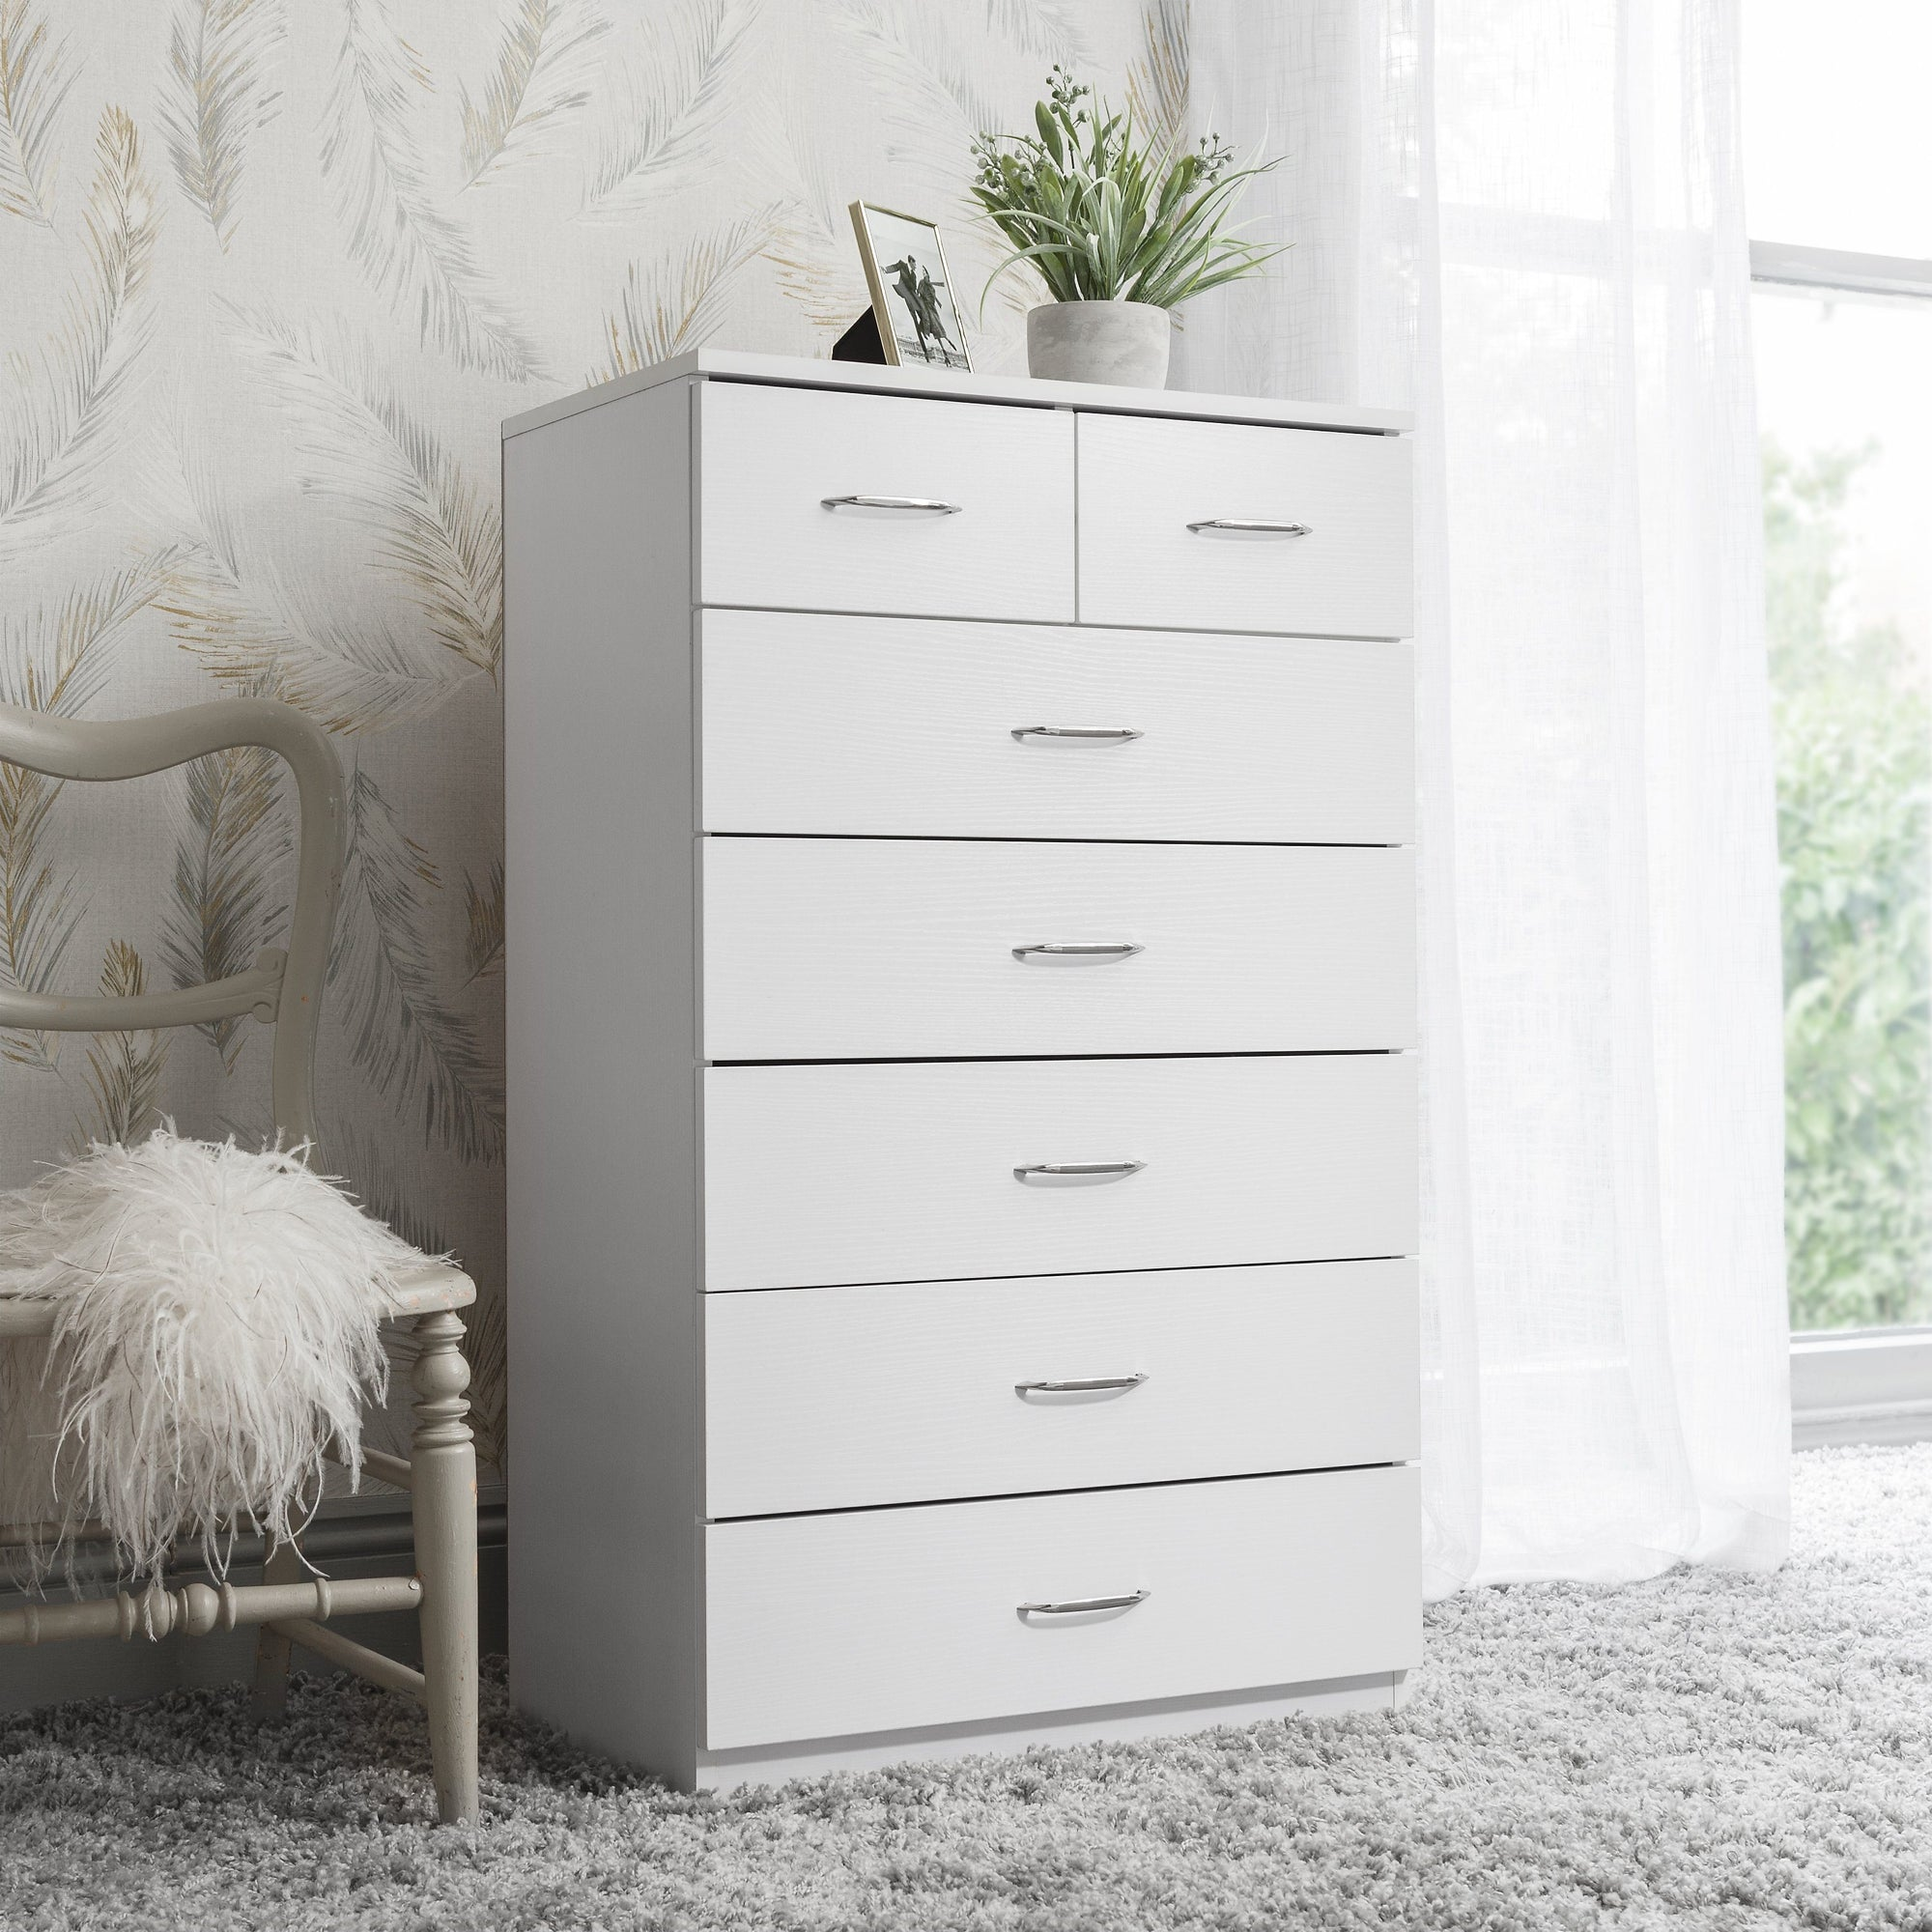 Chests Of Drawers Chest Of Drawers White Five Drawer Tall Bedroom Storage Furniture Home Furniture Diy Tallergrafico Com Uy